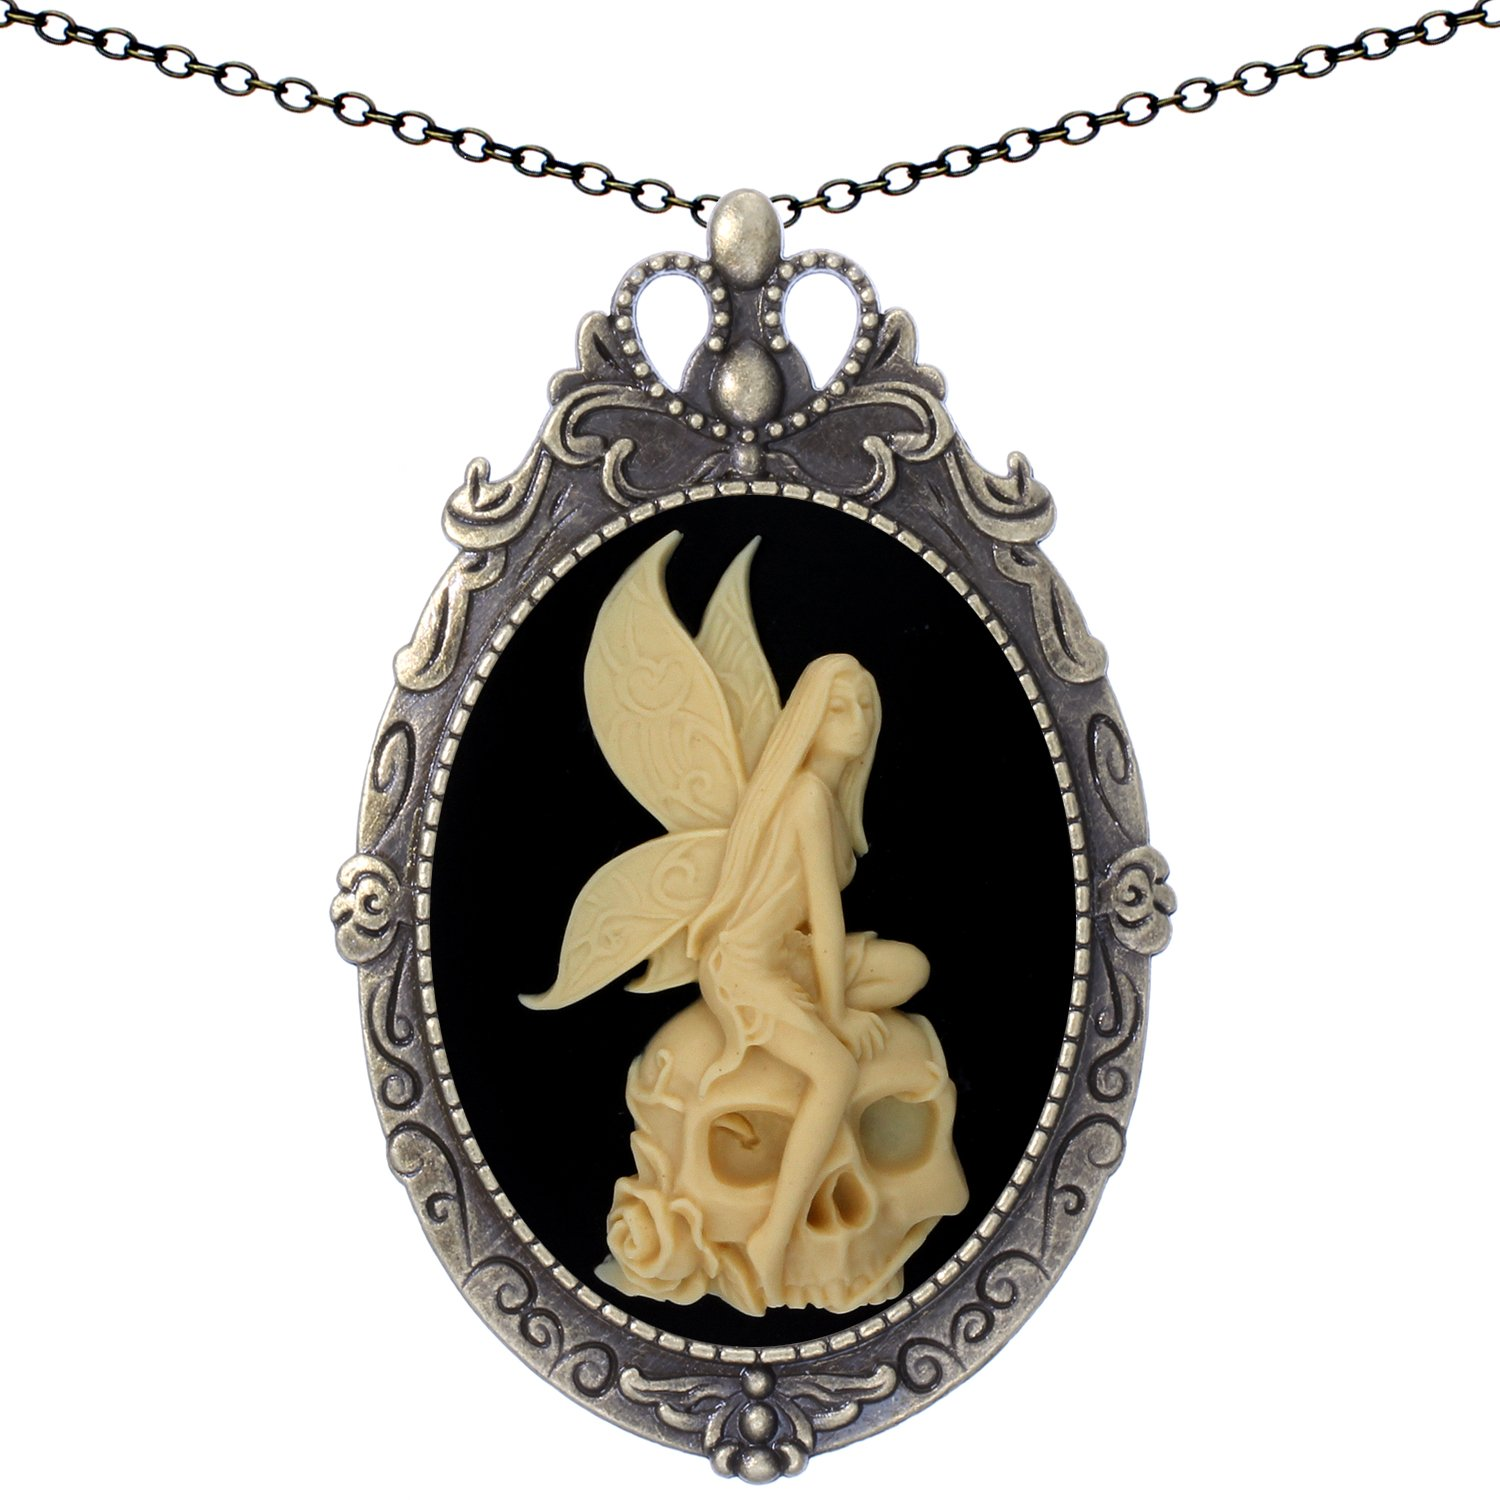 Yspace Skull Angel Brooch Antique Brass Shield Shape Pendant Necklace Two Way Jewelry 20'' Chain Pouch Gift